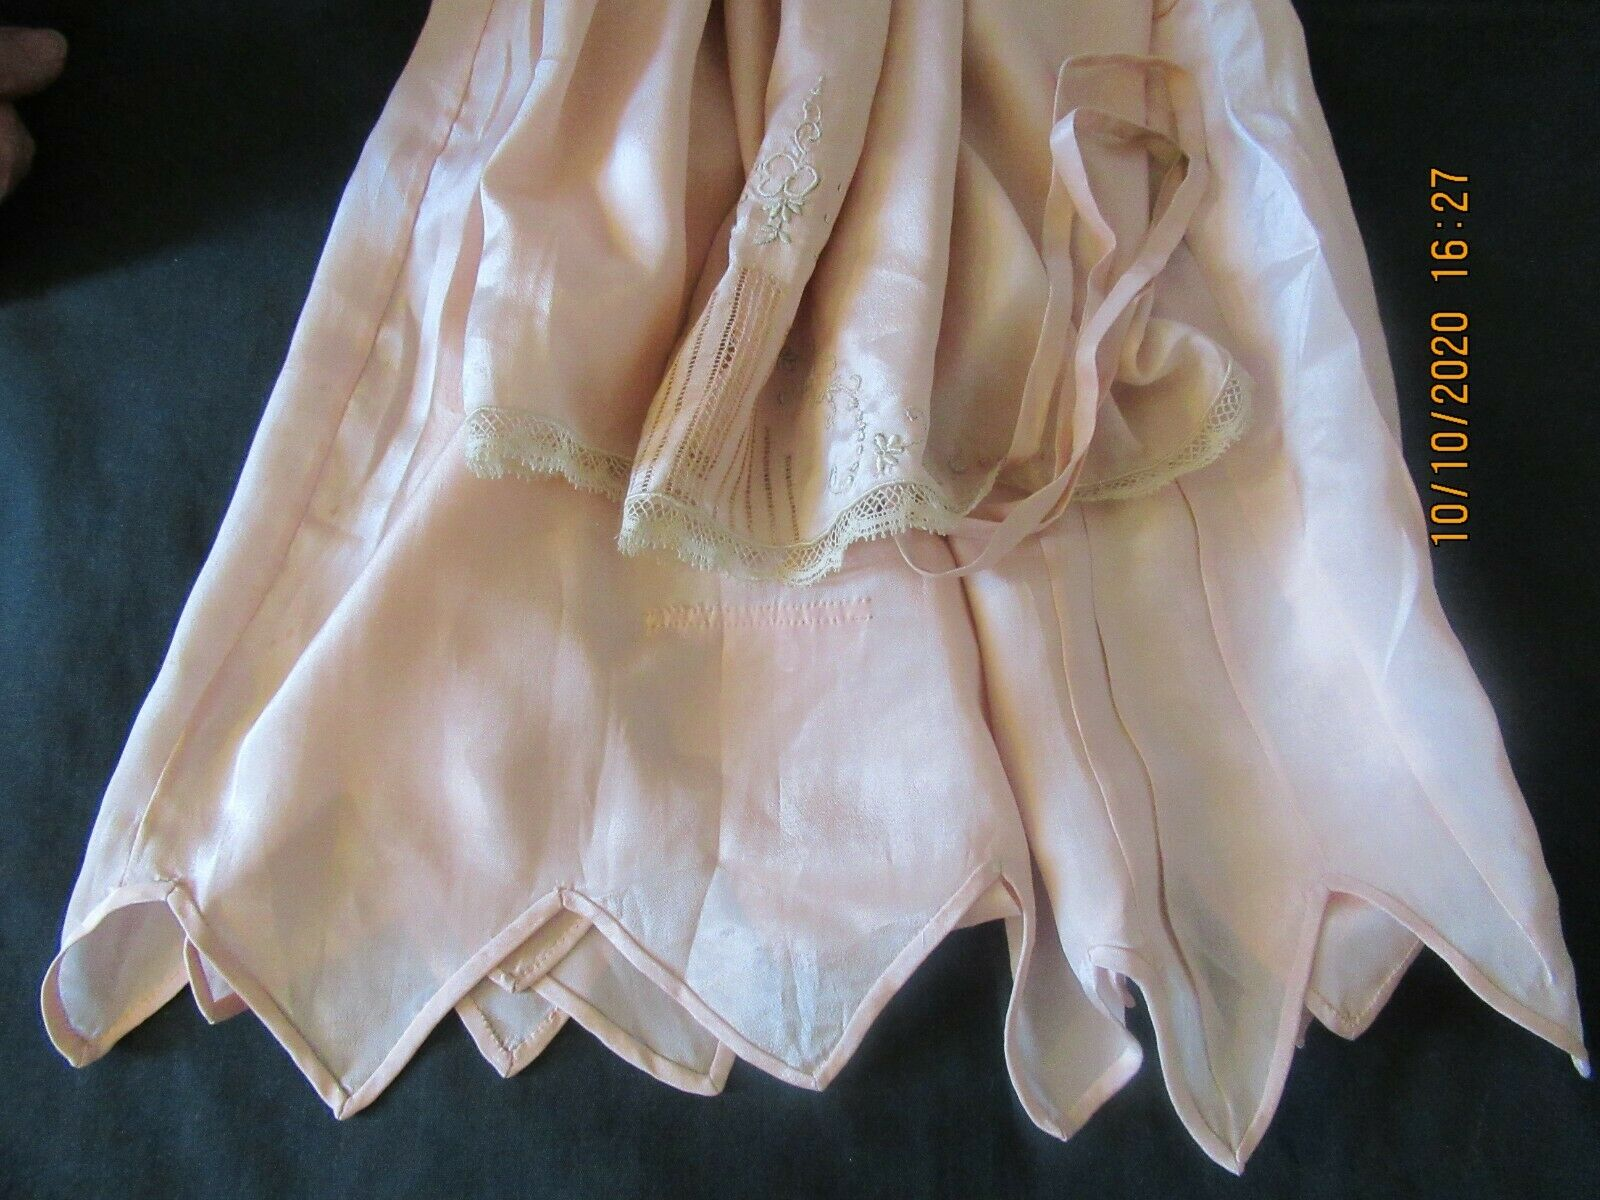 Antique Edwardian Camisole Teddy Embroidered Lace  - image 10